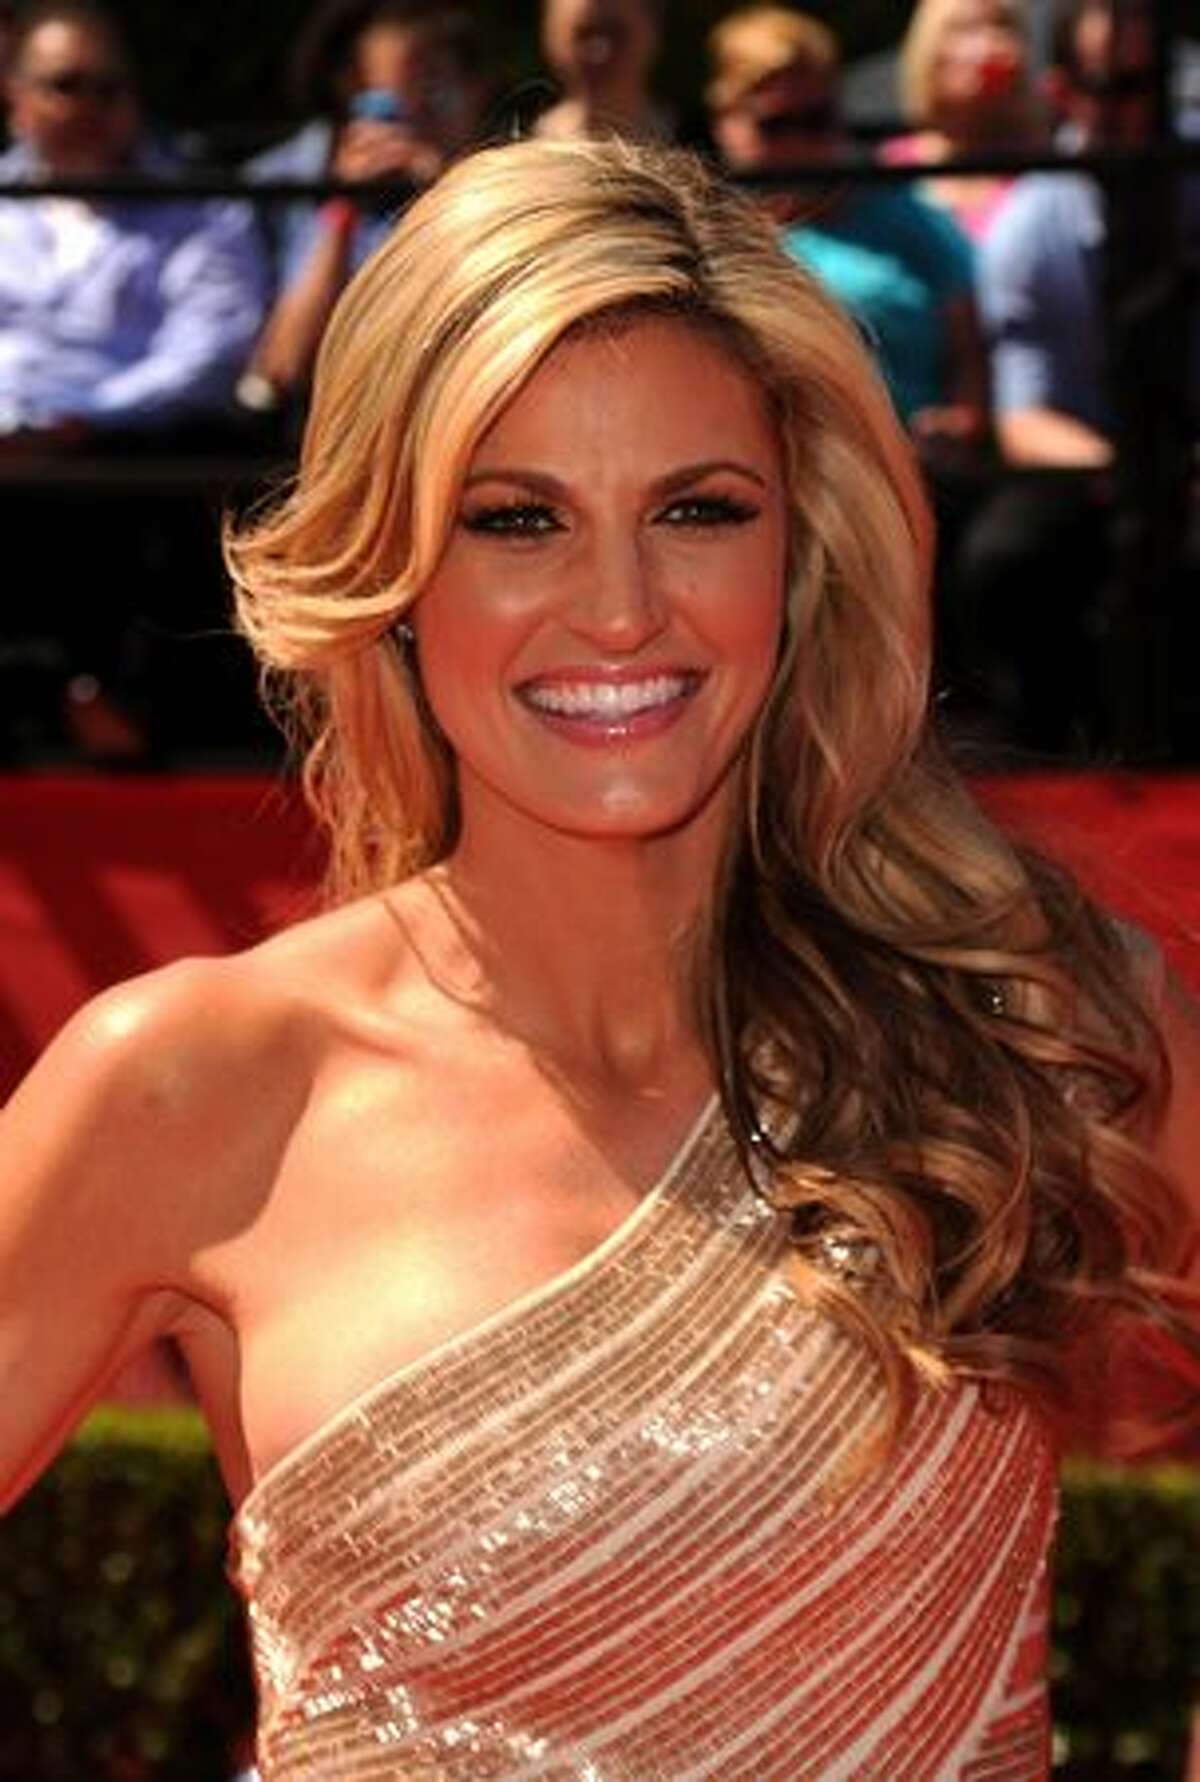 ESPN talent Erin Andrews arrives at the 2010 ESPY Awards at Nokia Theatre L.A. Live in Los Angeles on Wednesday, July 14, 2010.